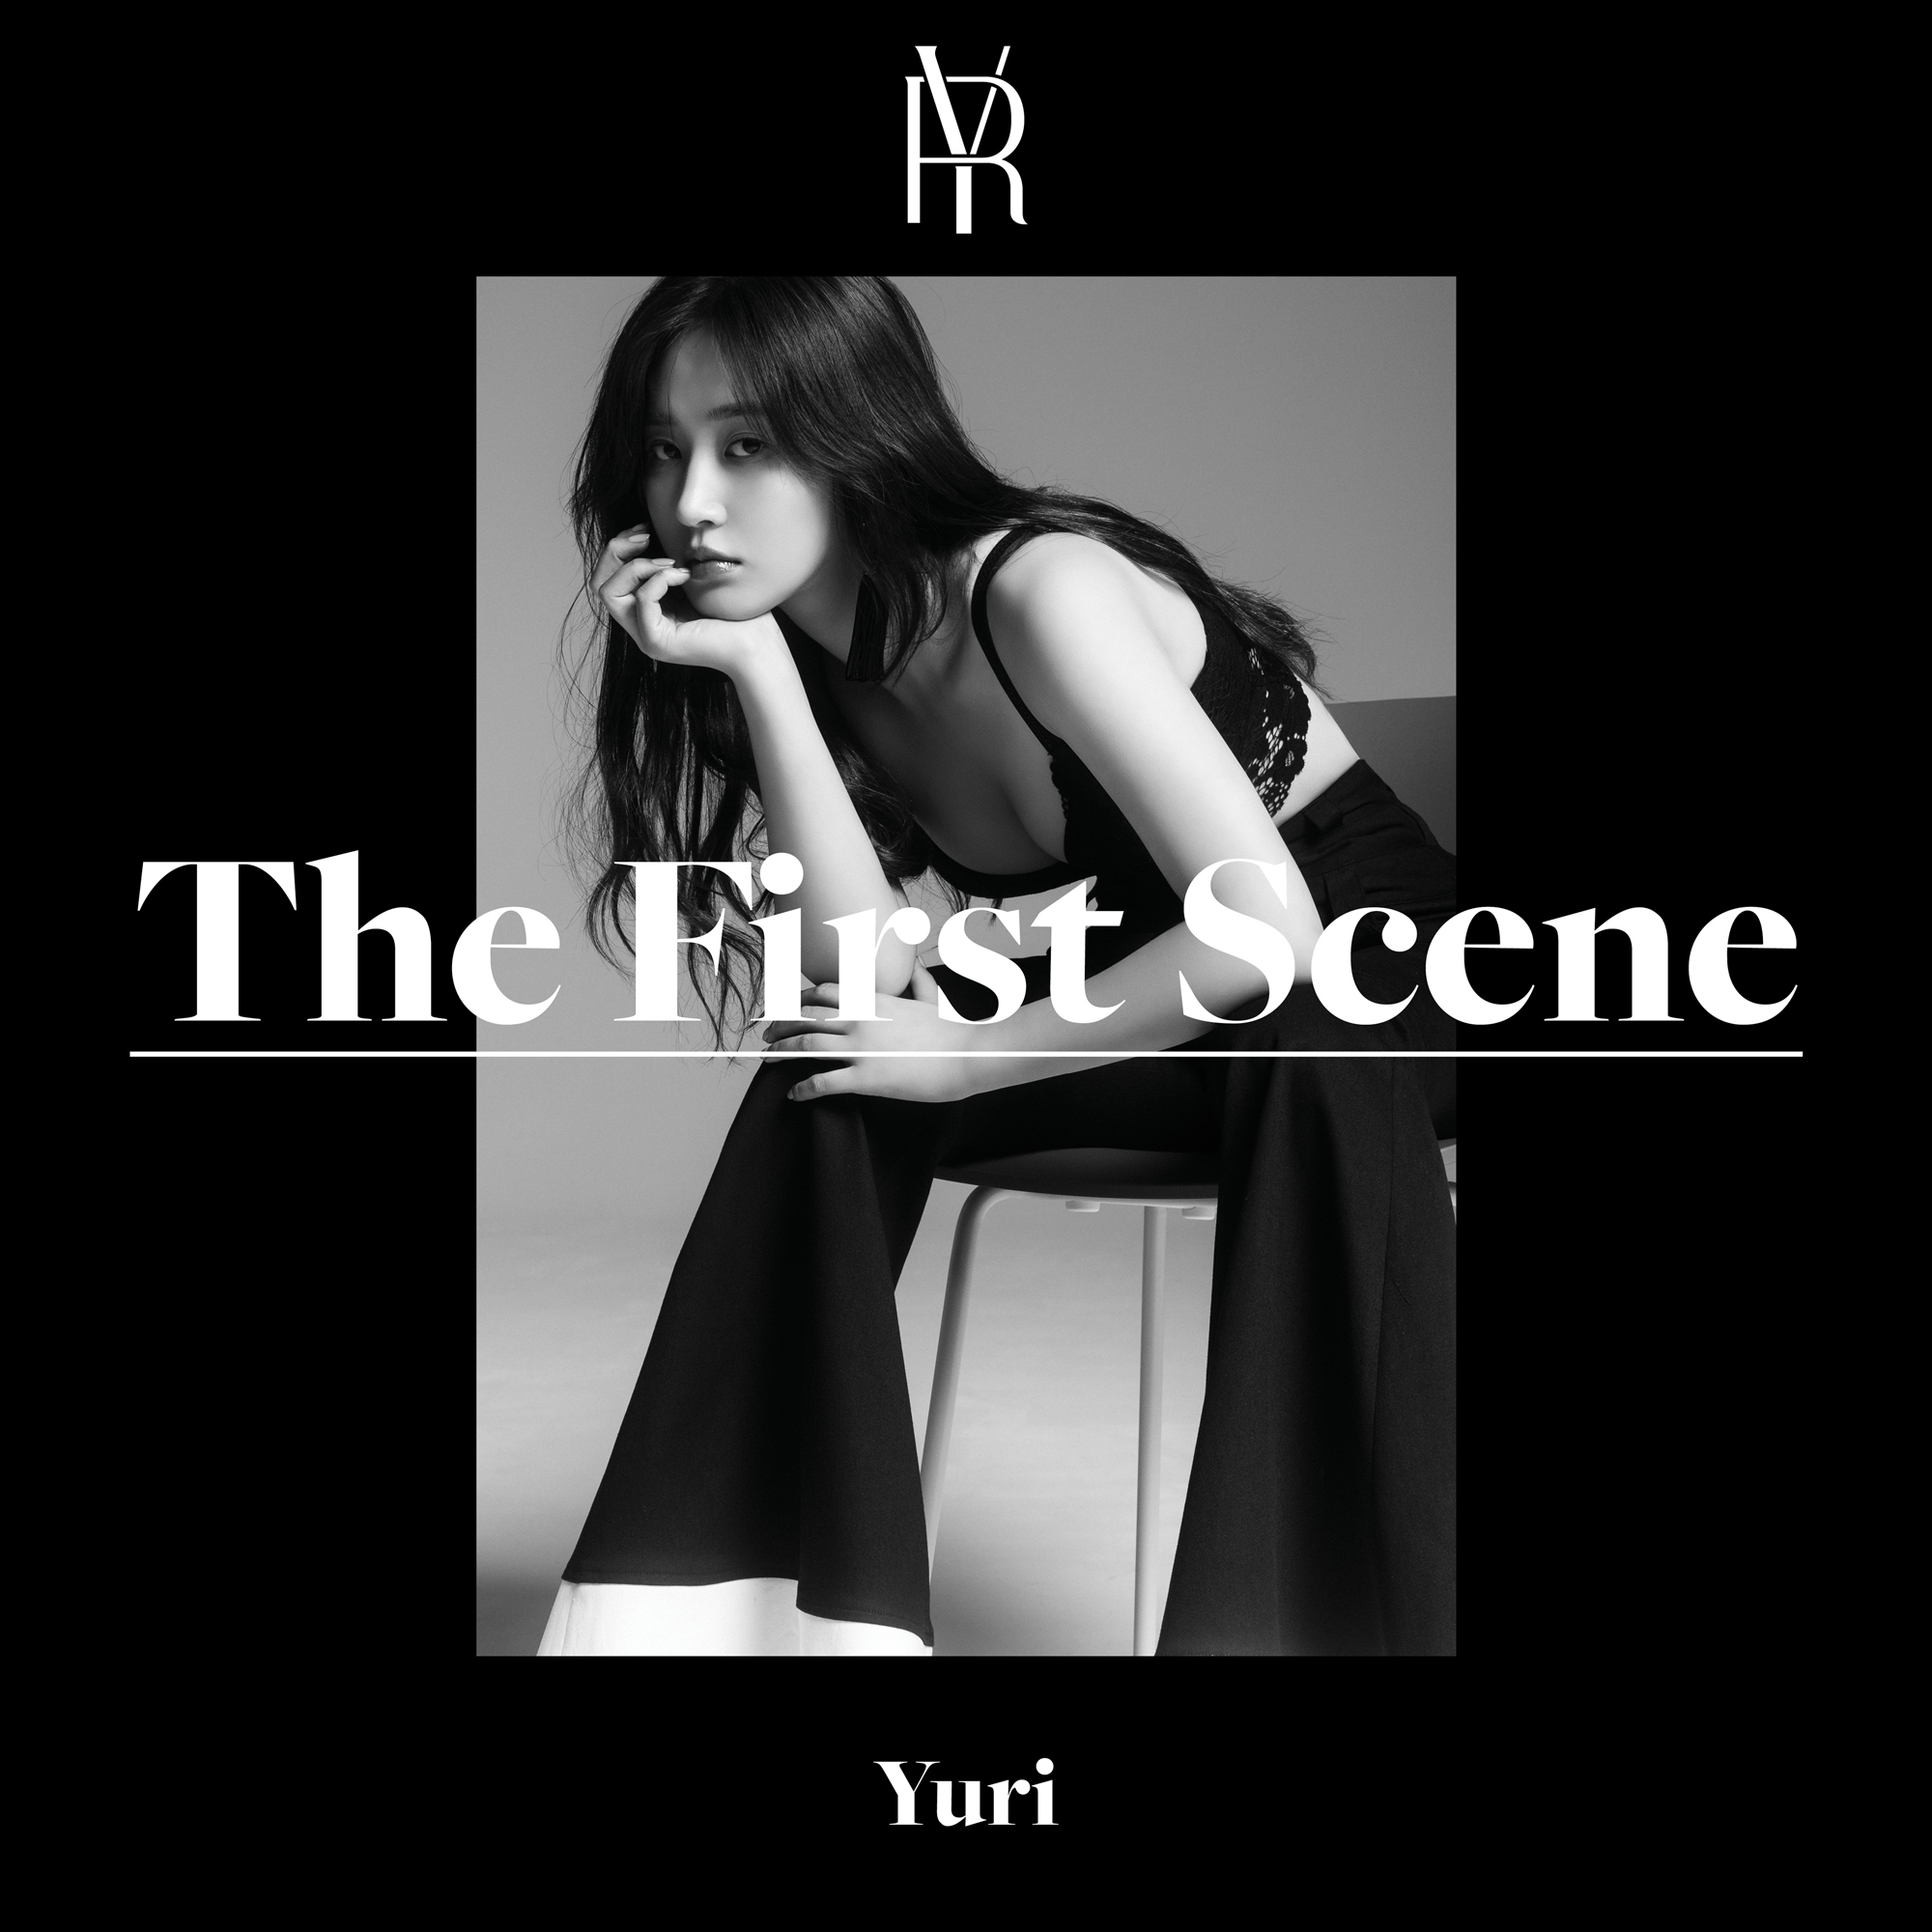 20181004.2156.17 Yuri - The First Scene (FLAC) cover.jpg